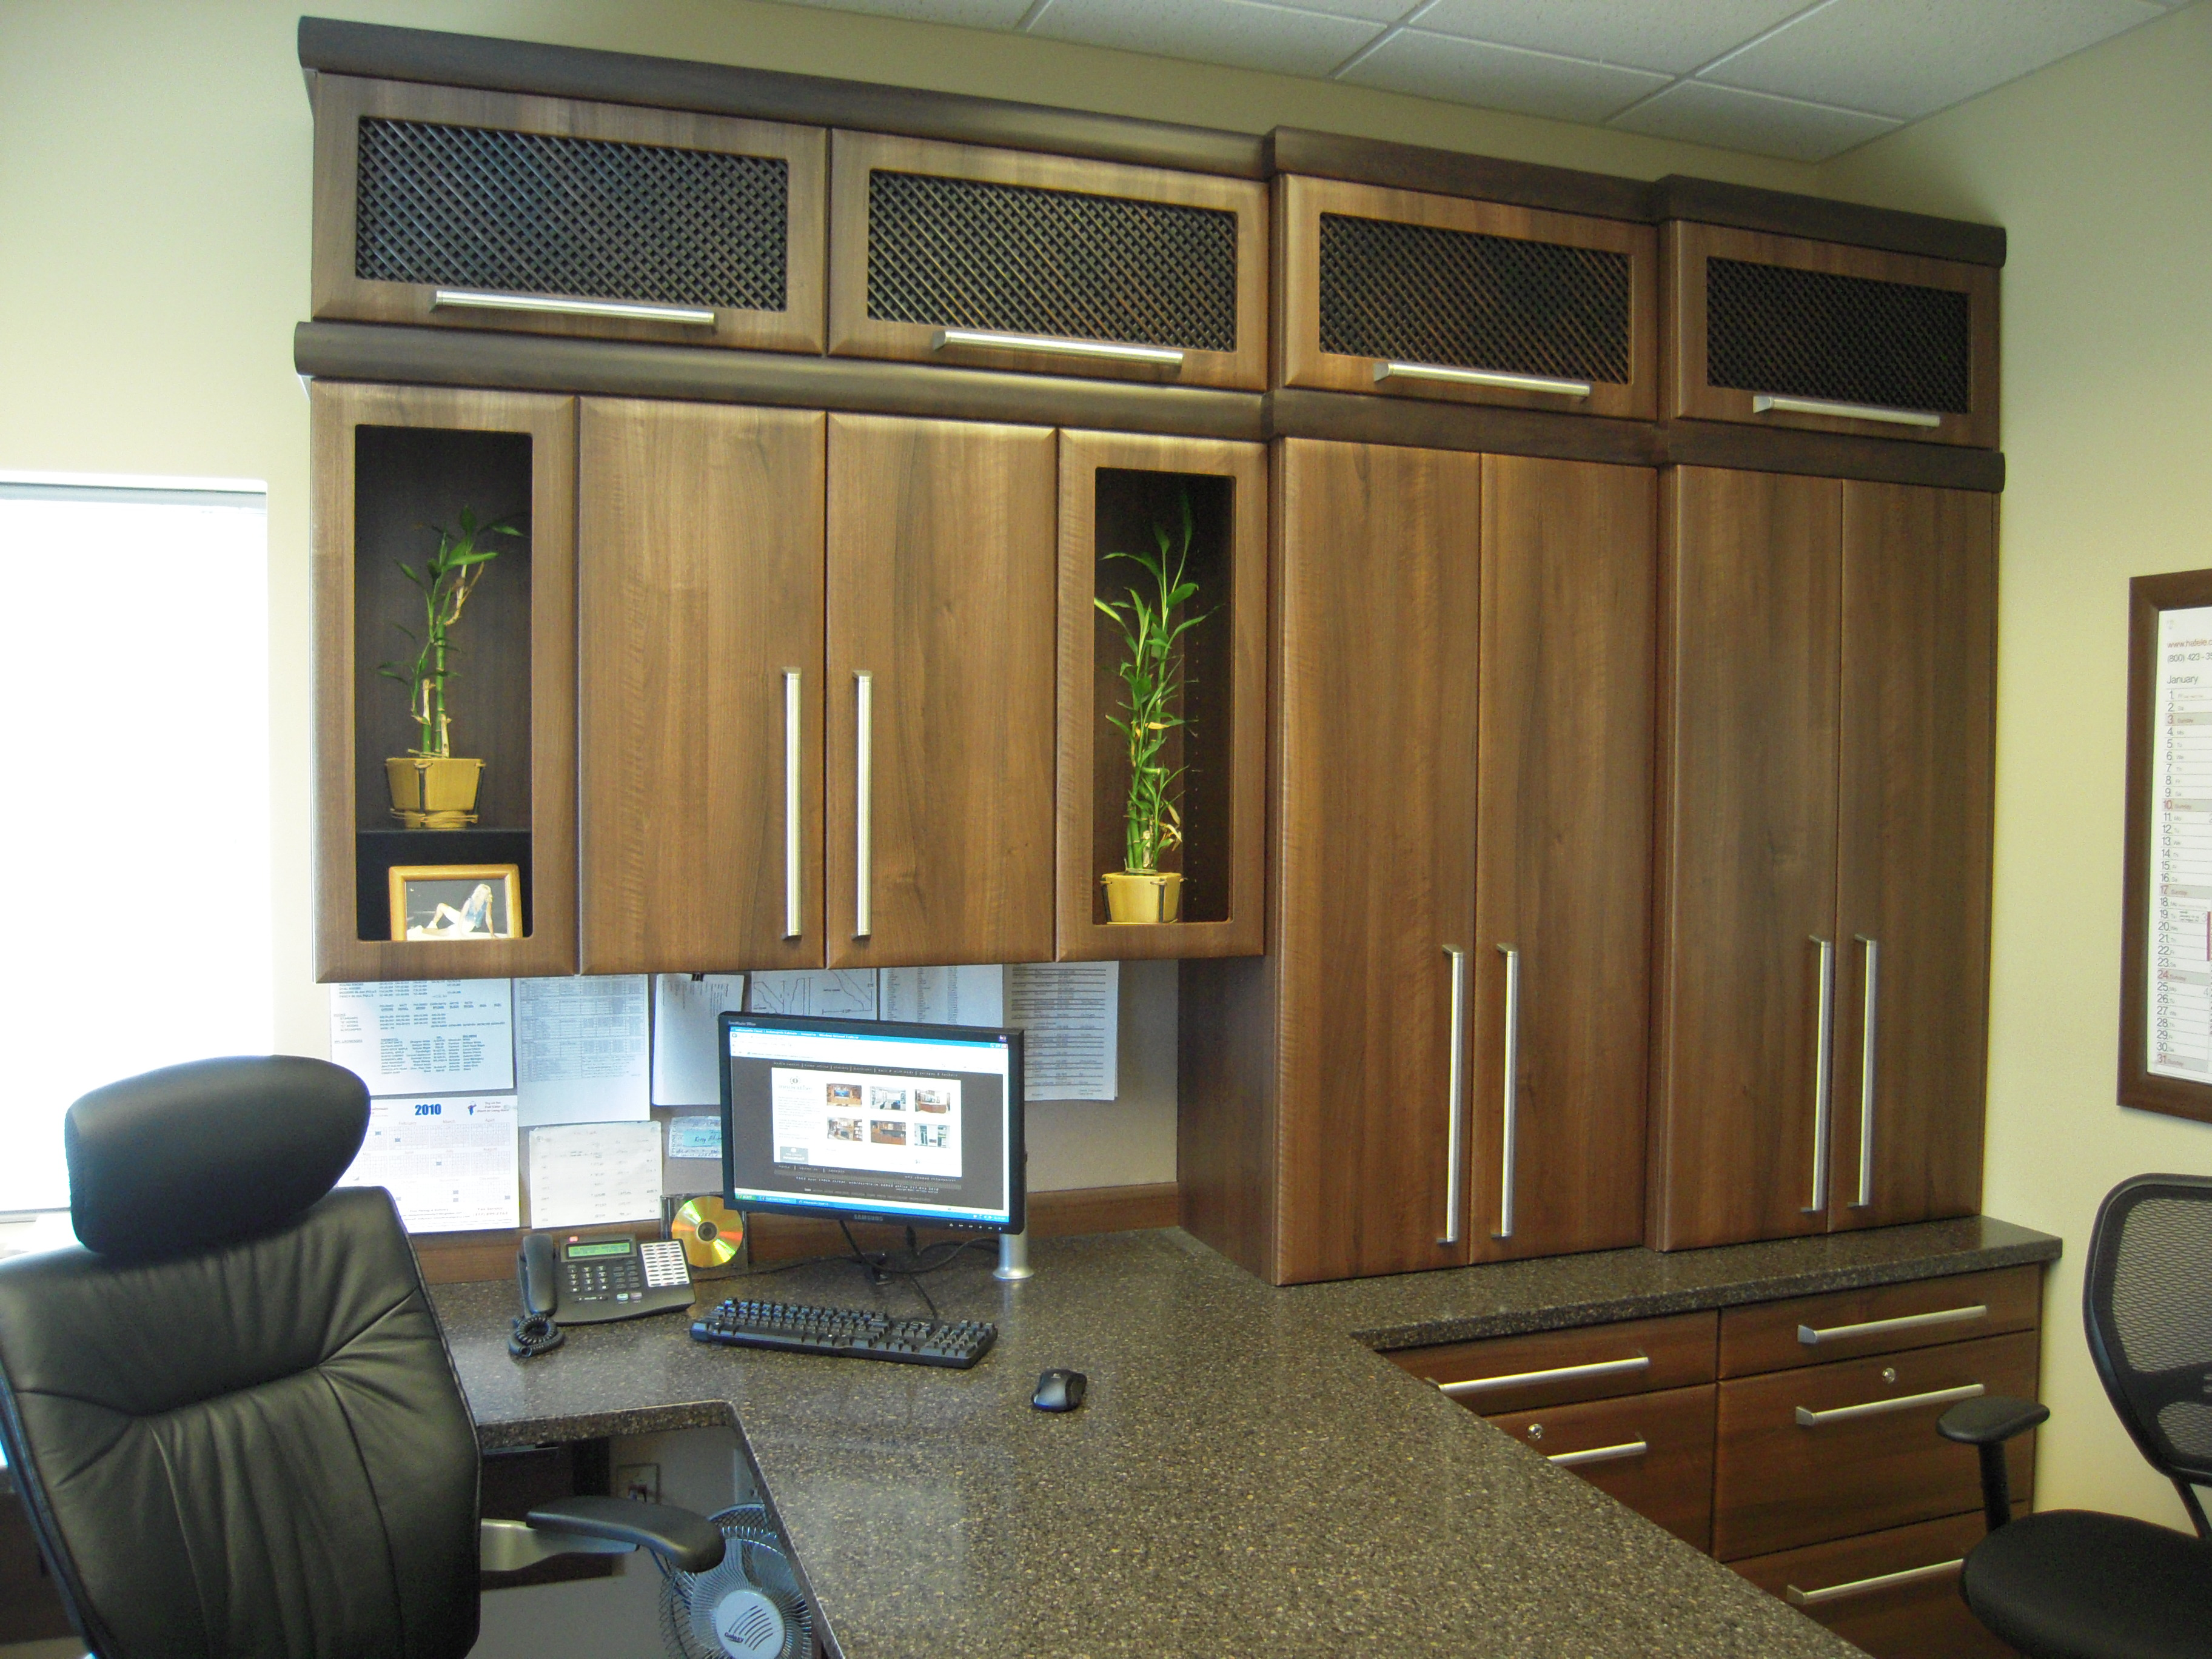 Home fice Cabinets Carmel Fishers Westfield & More